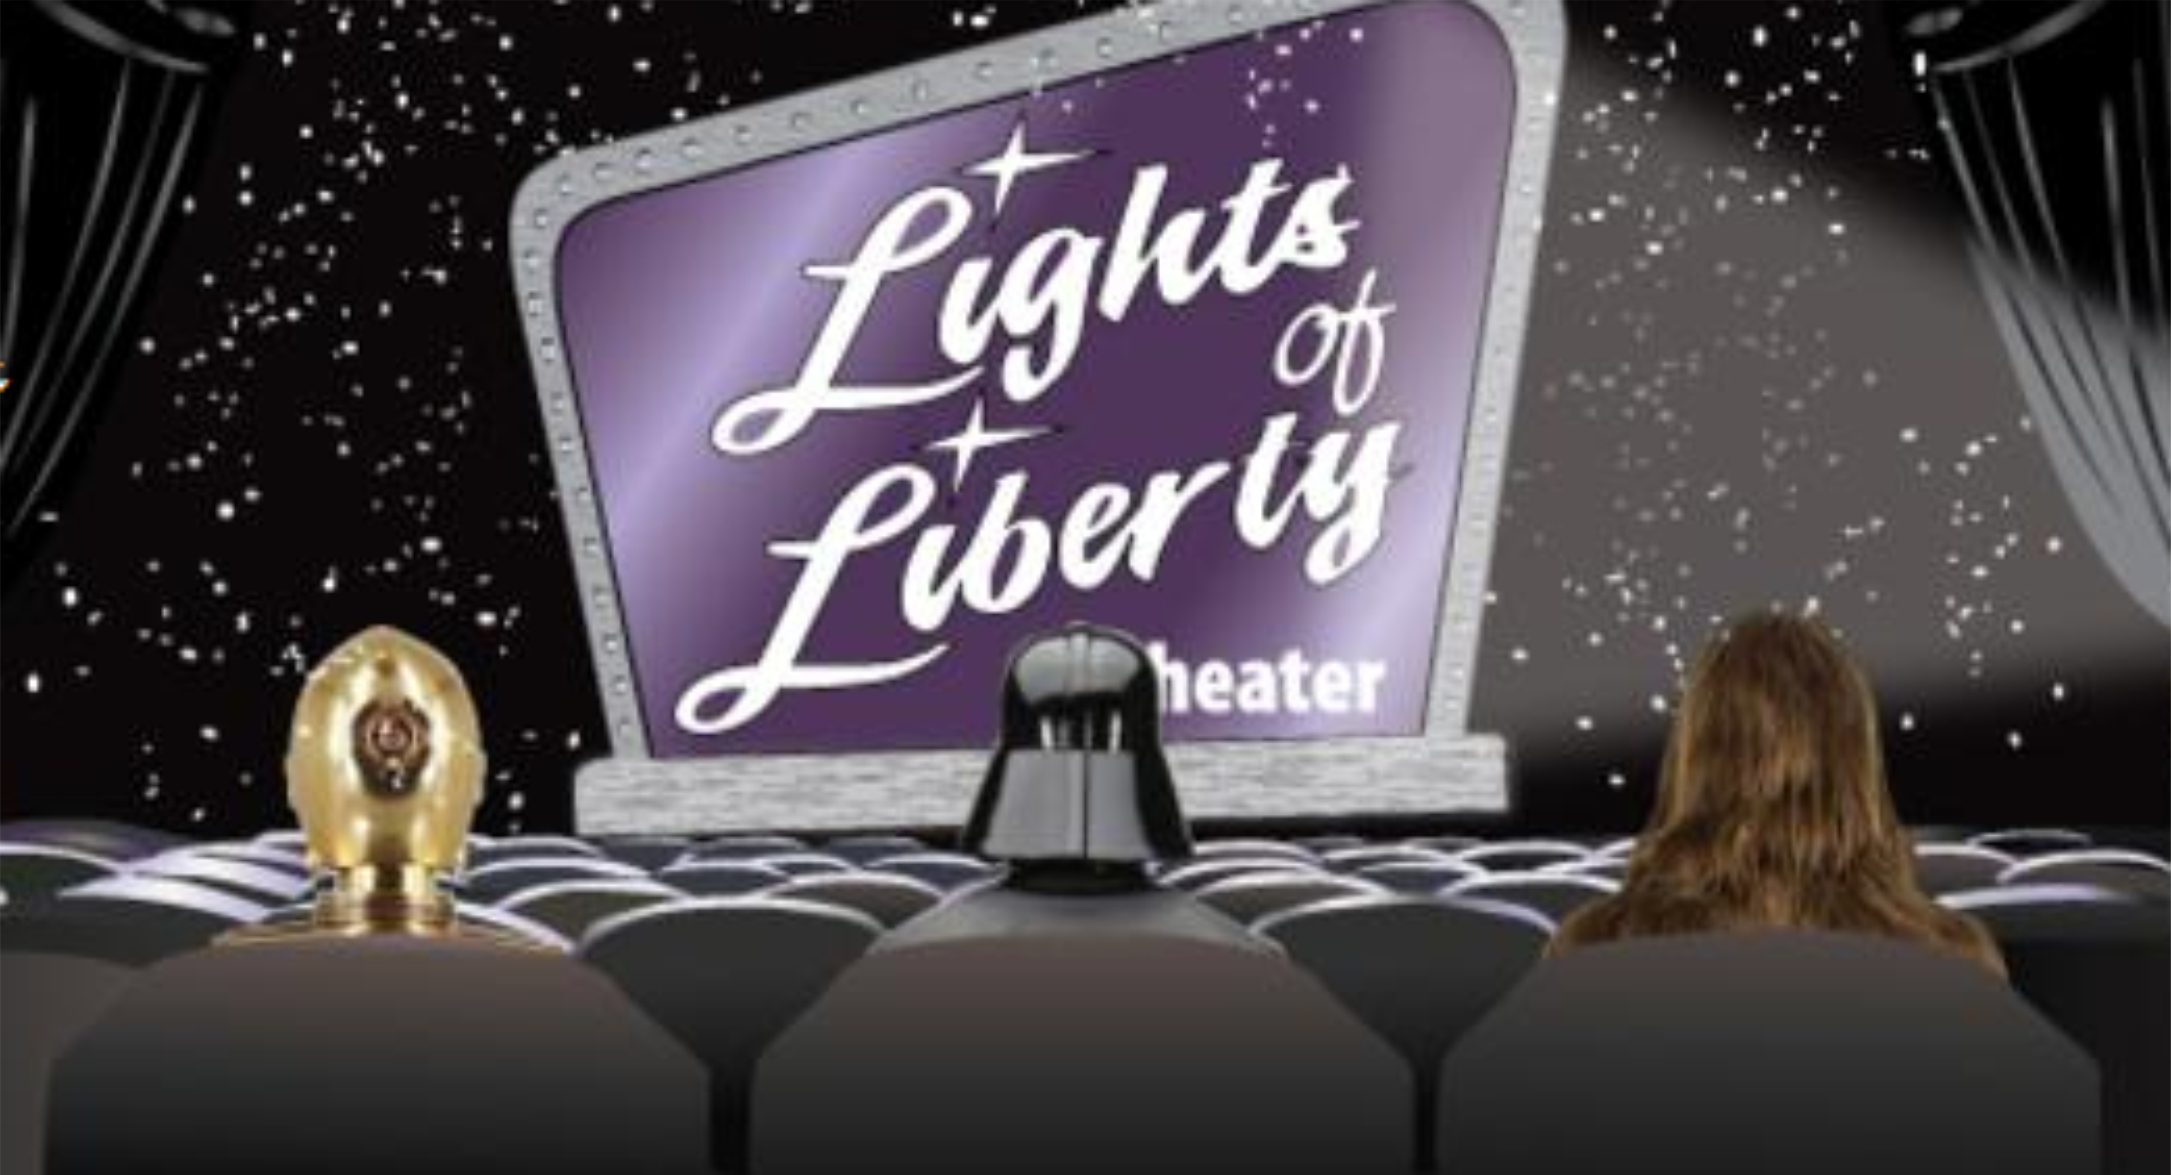 Lights of Liberty Theater